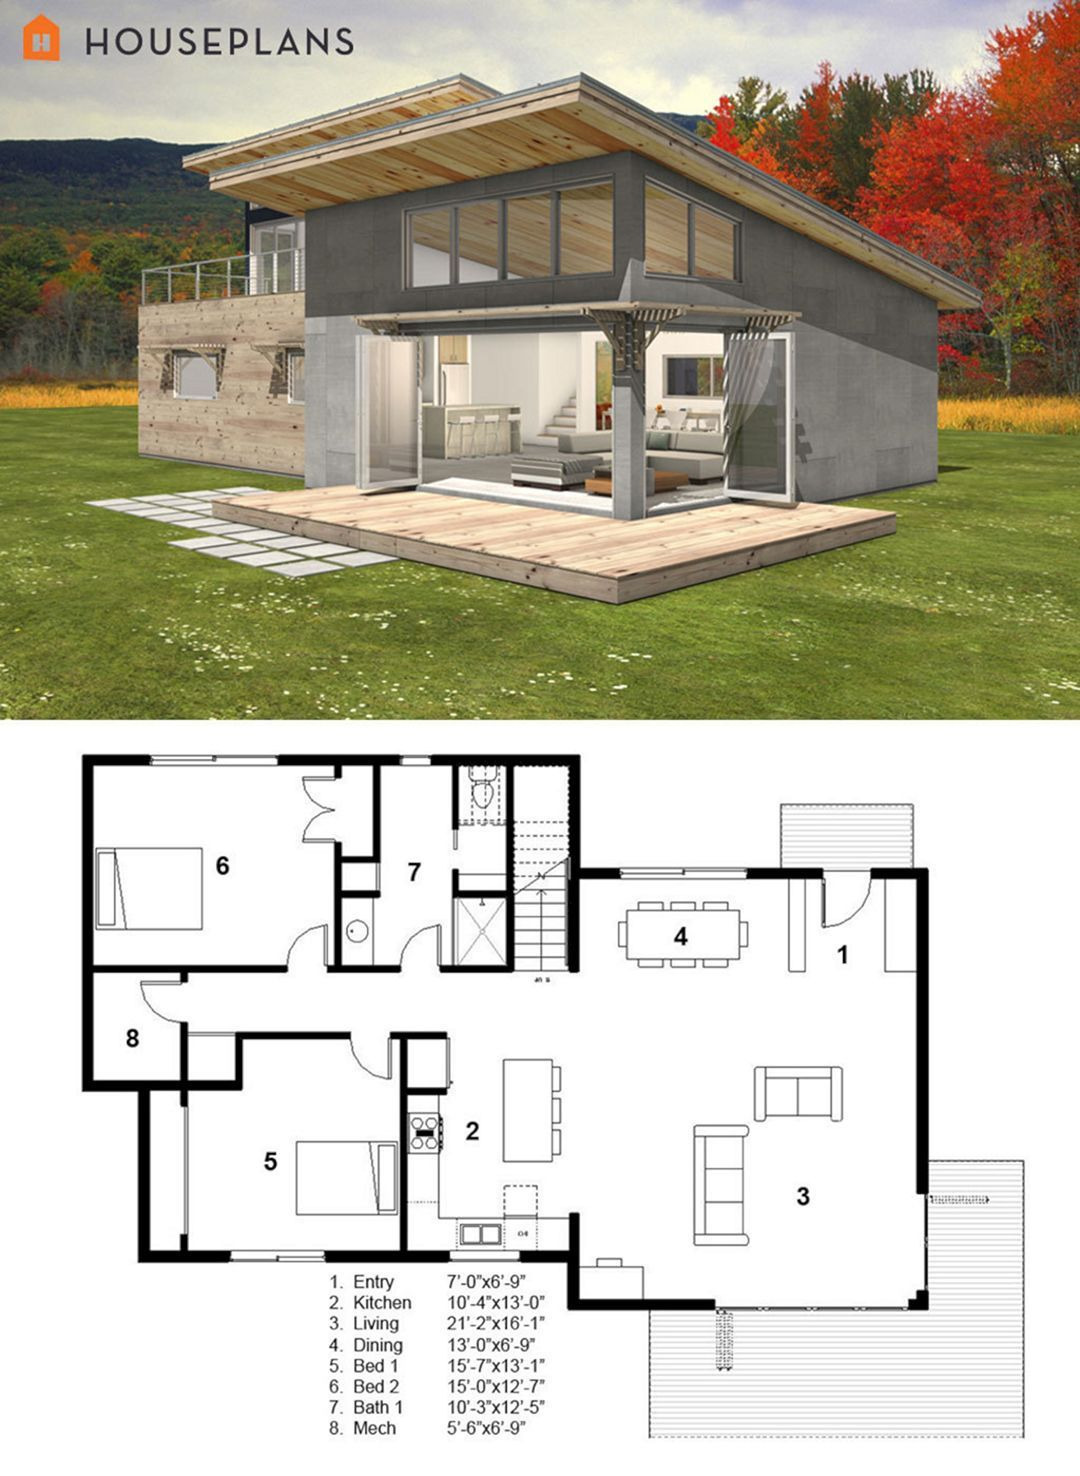 Small House Plans Modern New the Best Modern Tiny House Design Small Homes Inspirations